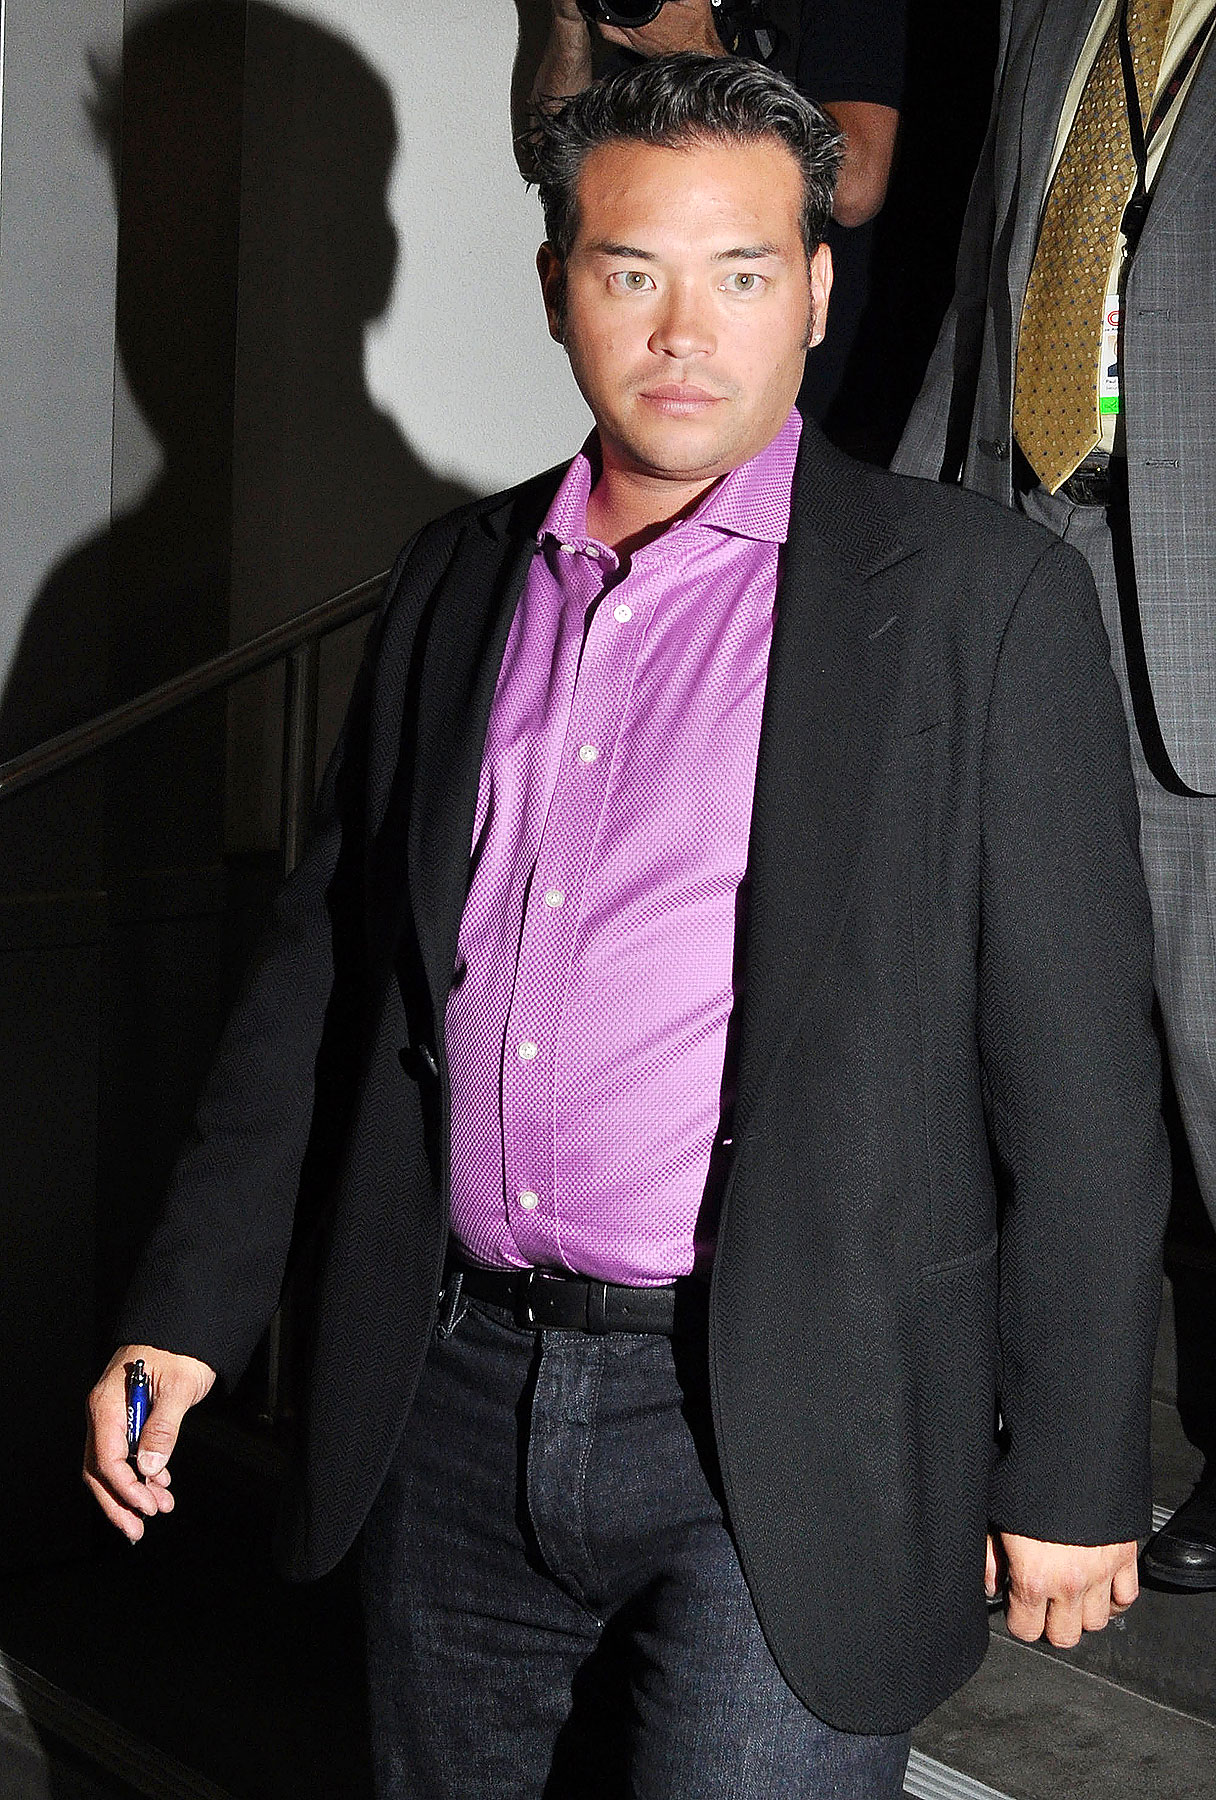 Jon Gosselin Wants Girlfriend Hailey On His New Show